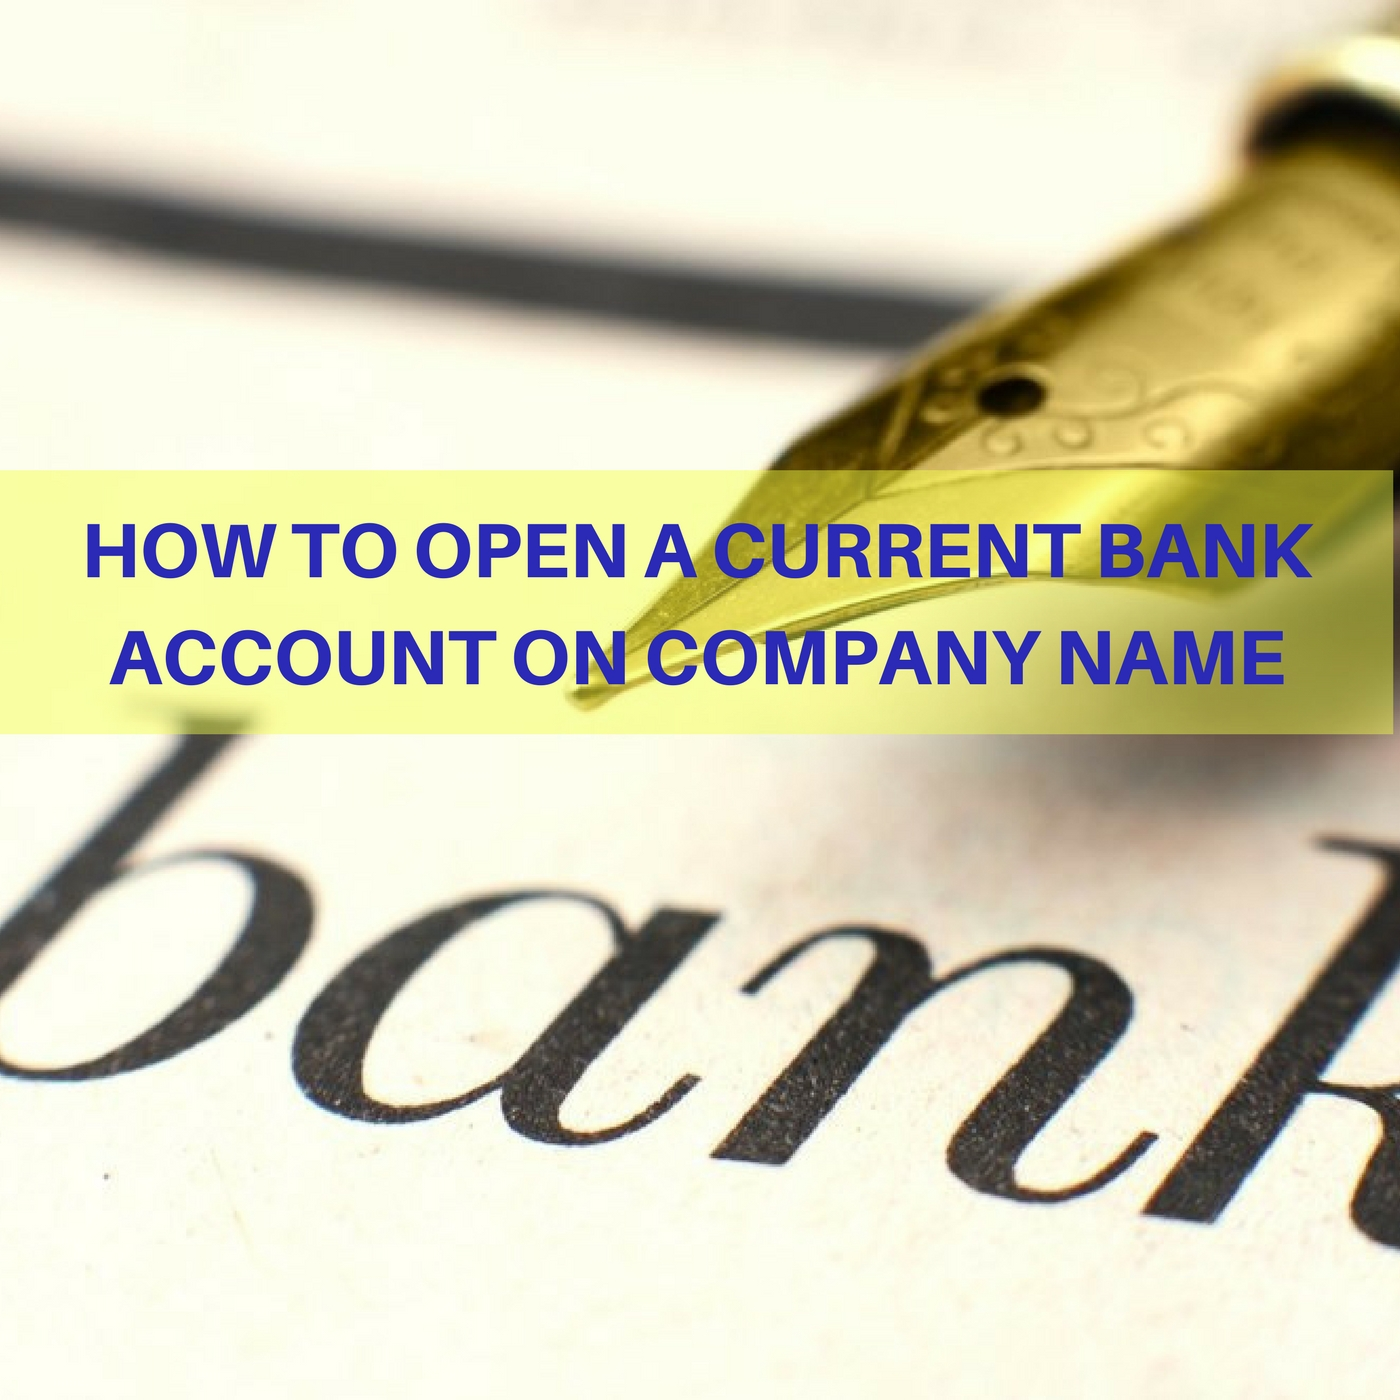 How to open a current account